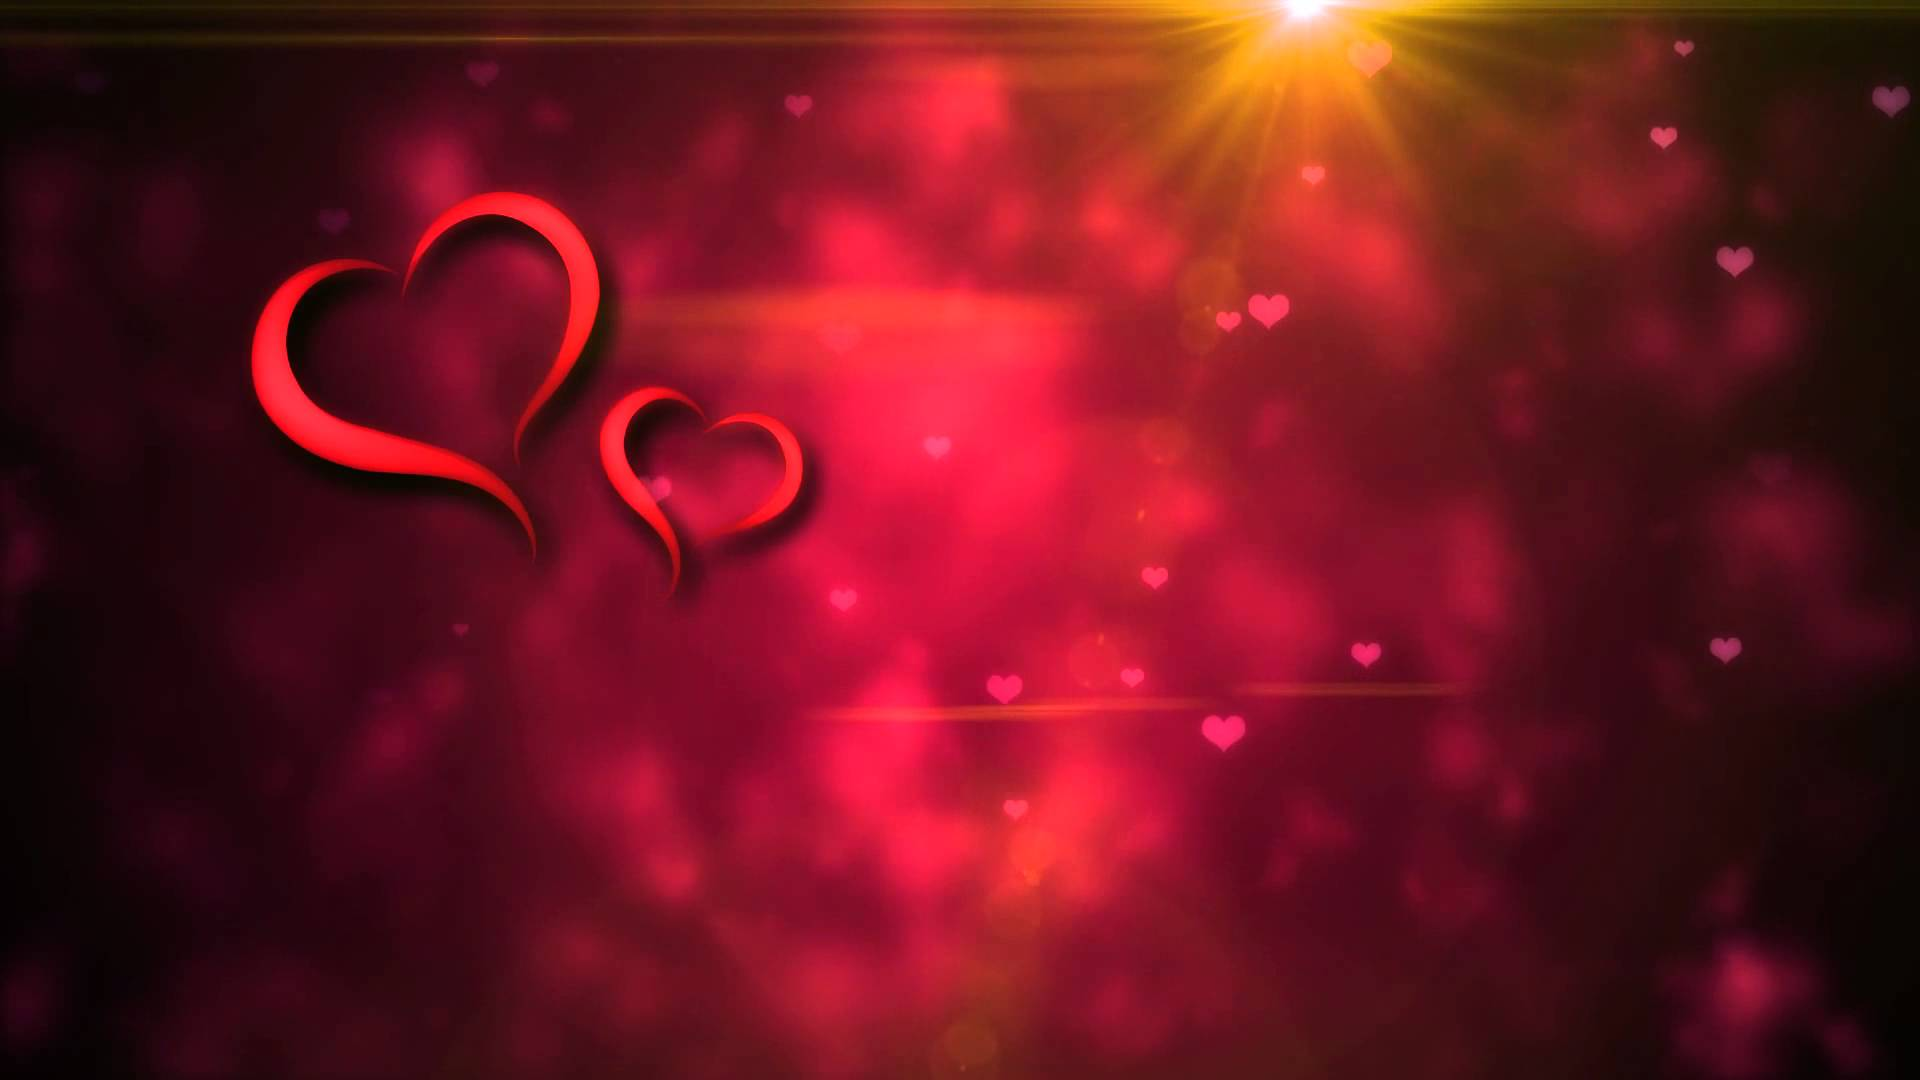 Love Wallpaper Full Hd Size : Hd Wedding Backgrounds - WallpaperSafari